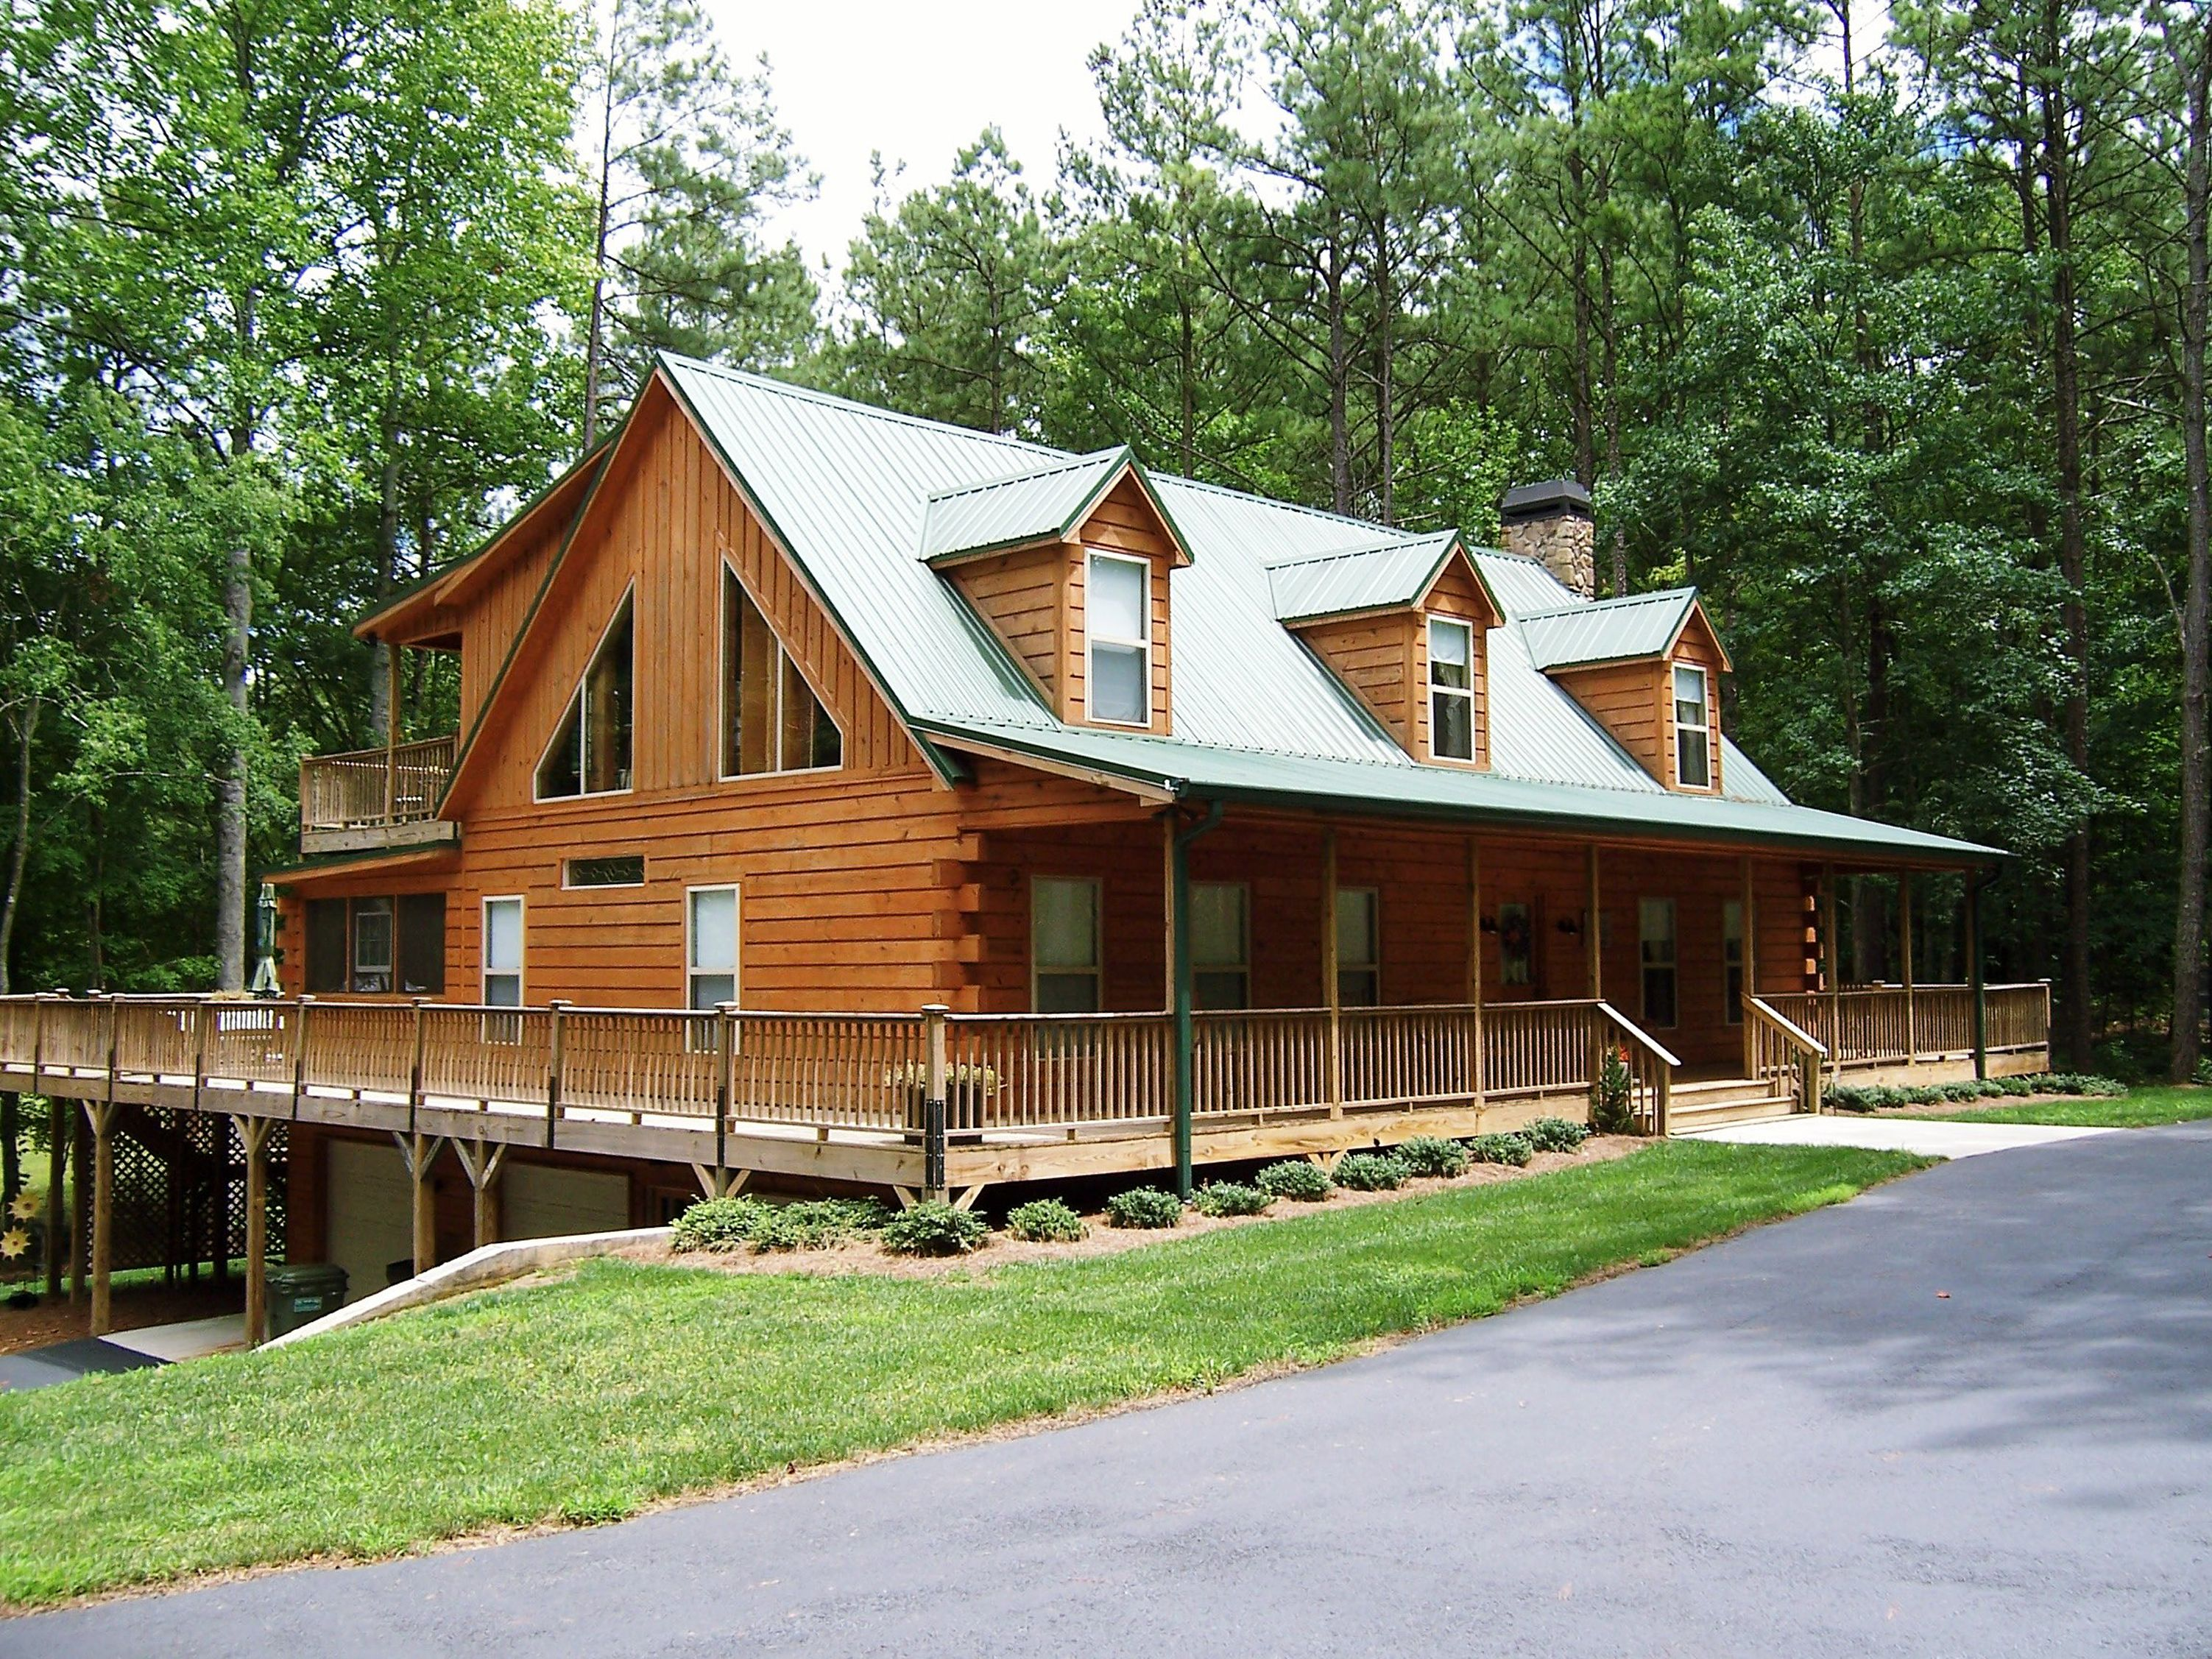 Modular cabin with split log siding by nationwide homes for Modular cabins and cottages